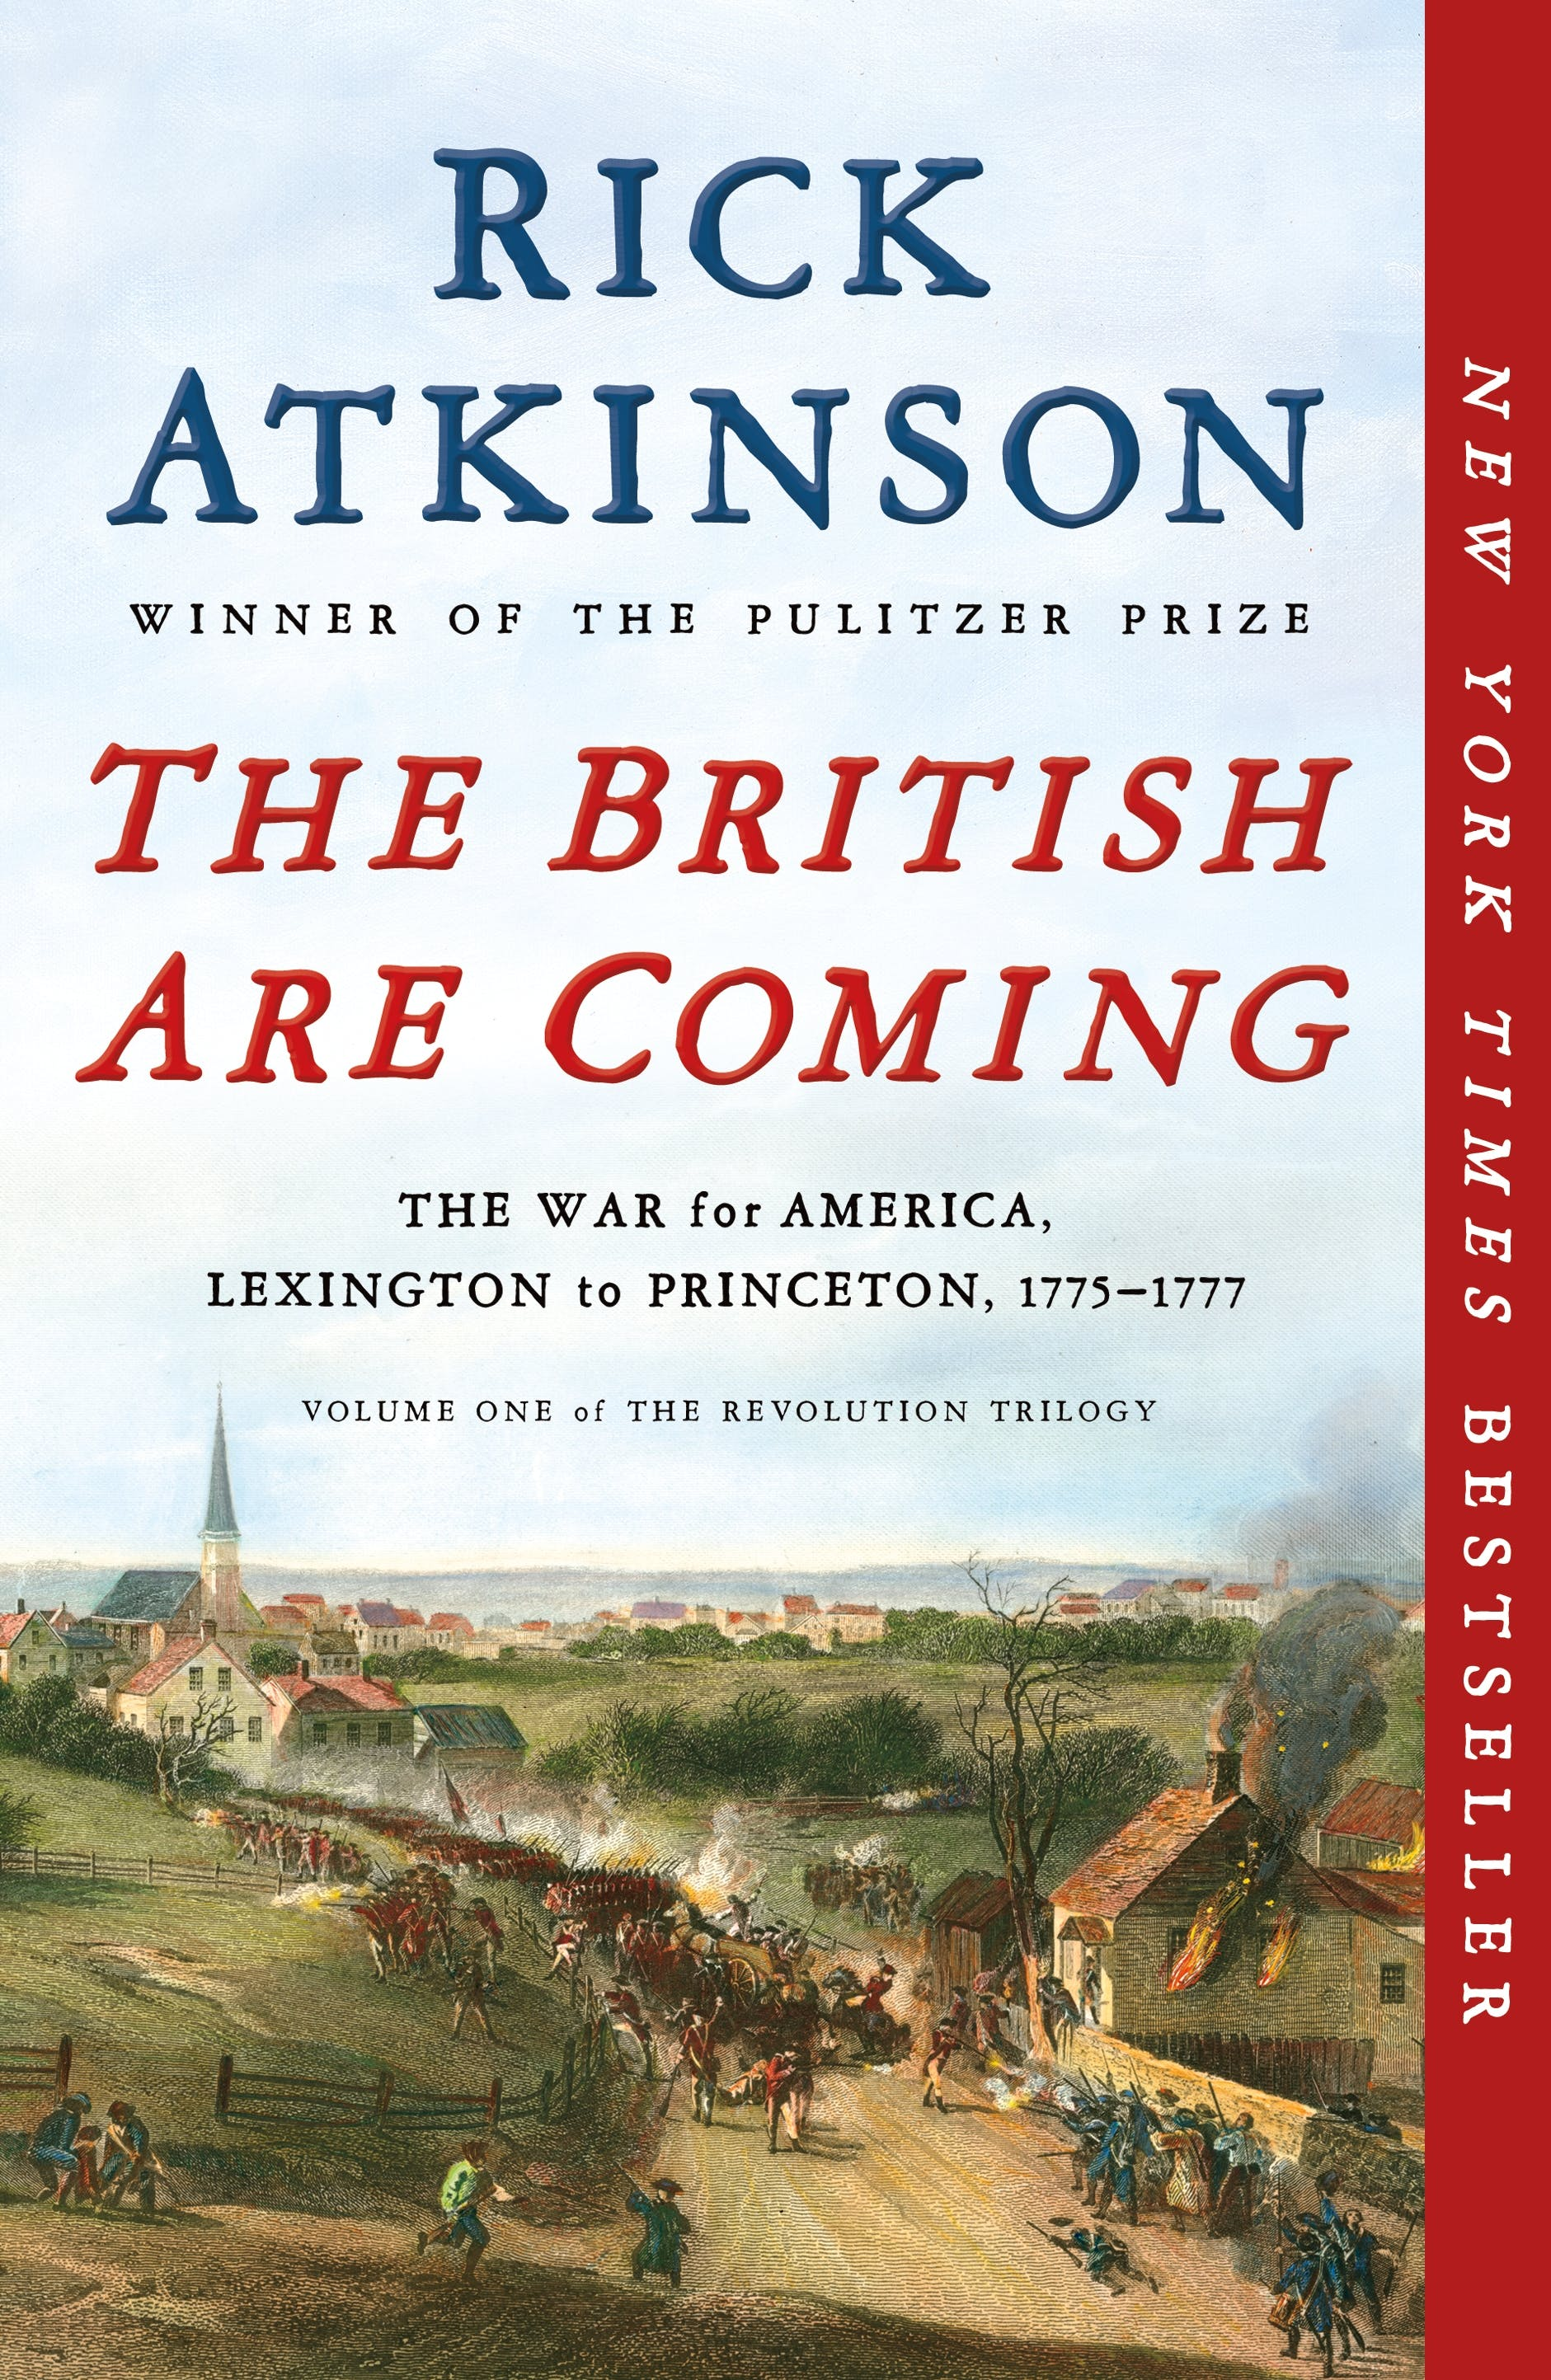 Image of The British Are Coming